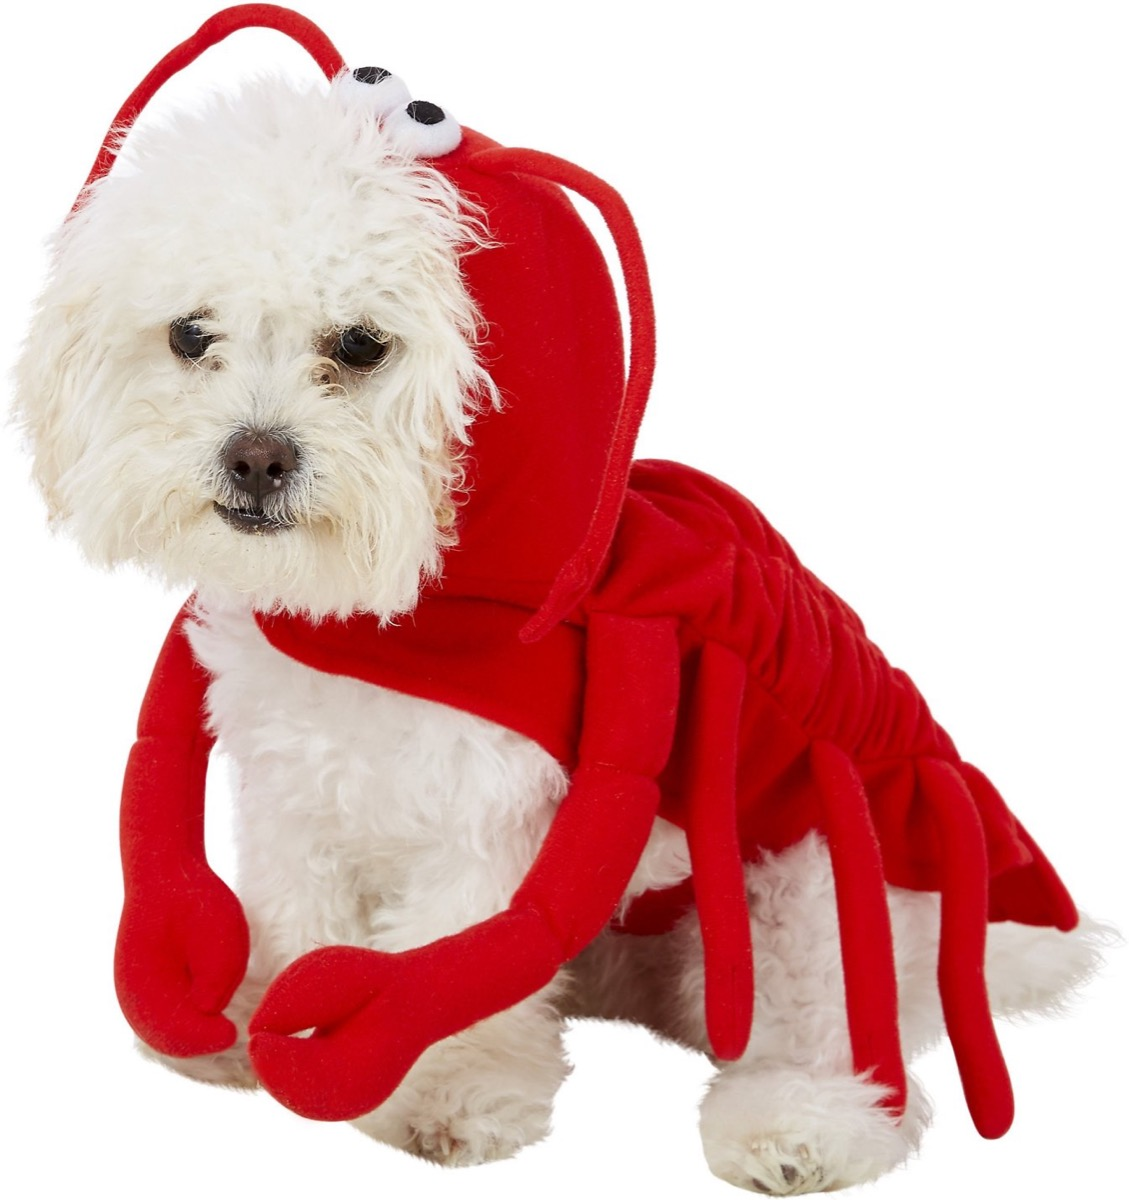 dog in lobster costume, dog halloween costumes